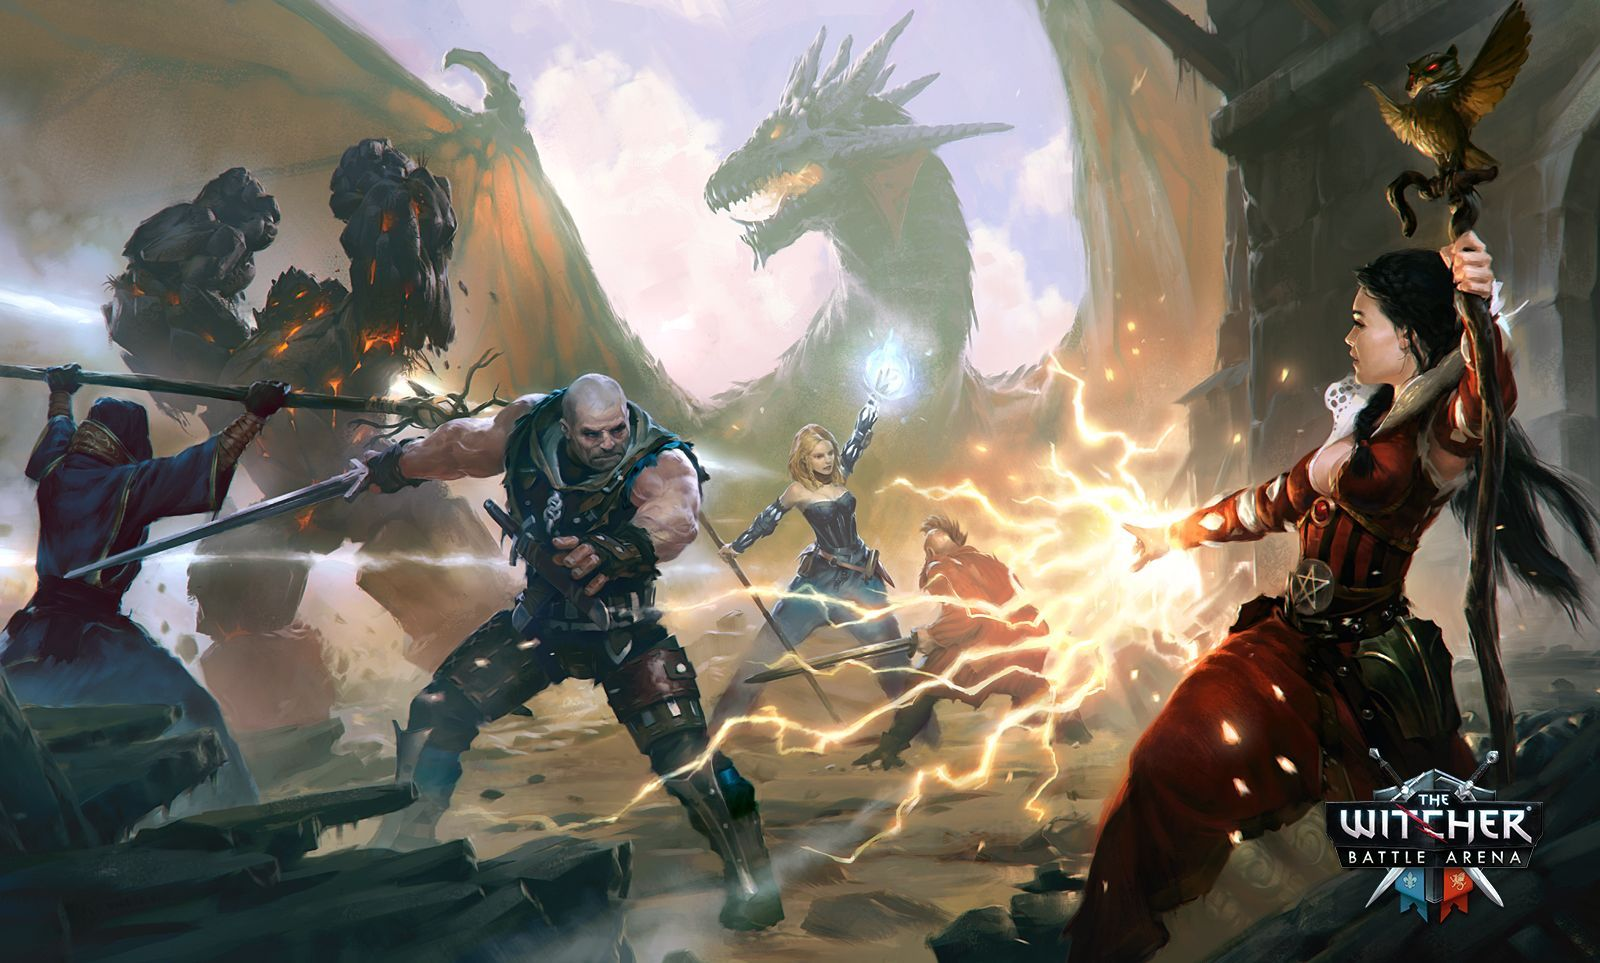 The Witcher Battle Arena tente d'introduire le genre du MOBA sur mobile